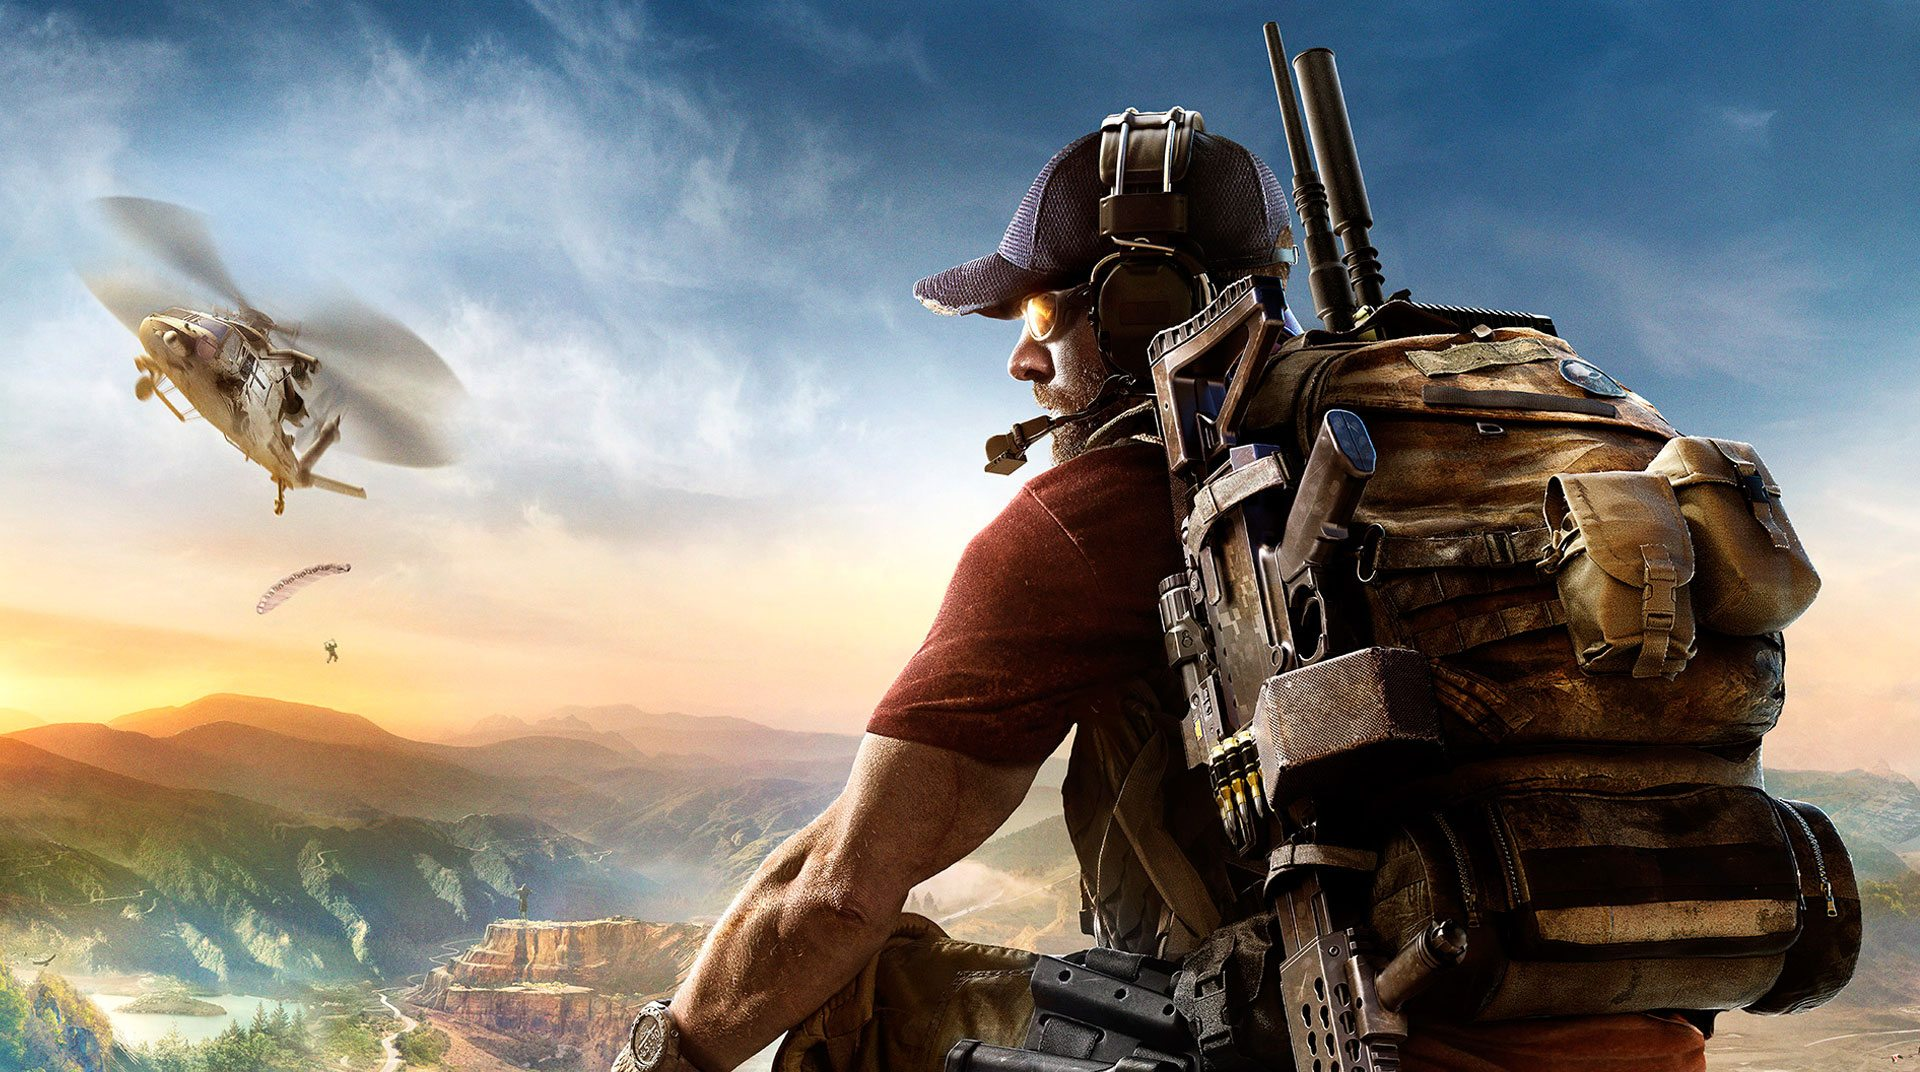 Play Ghost Recon® Wildlands HQ On PC And Mac